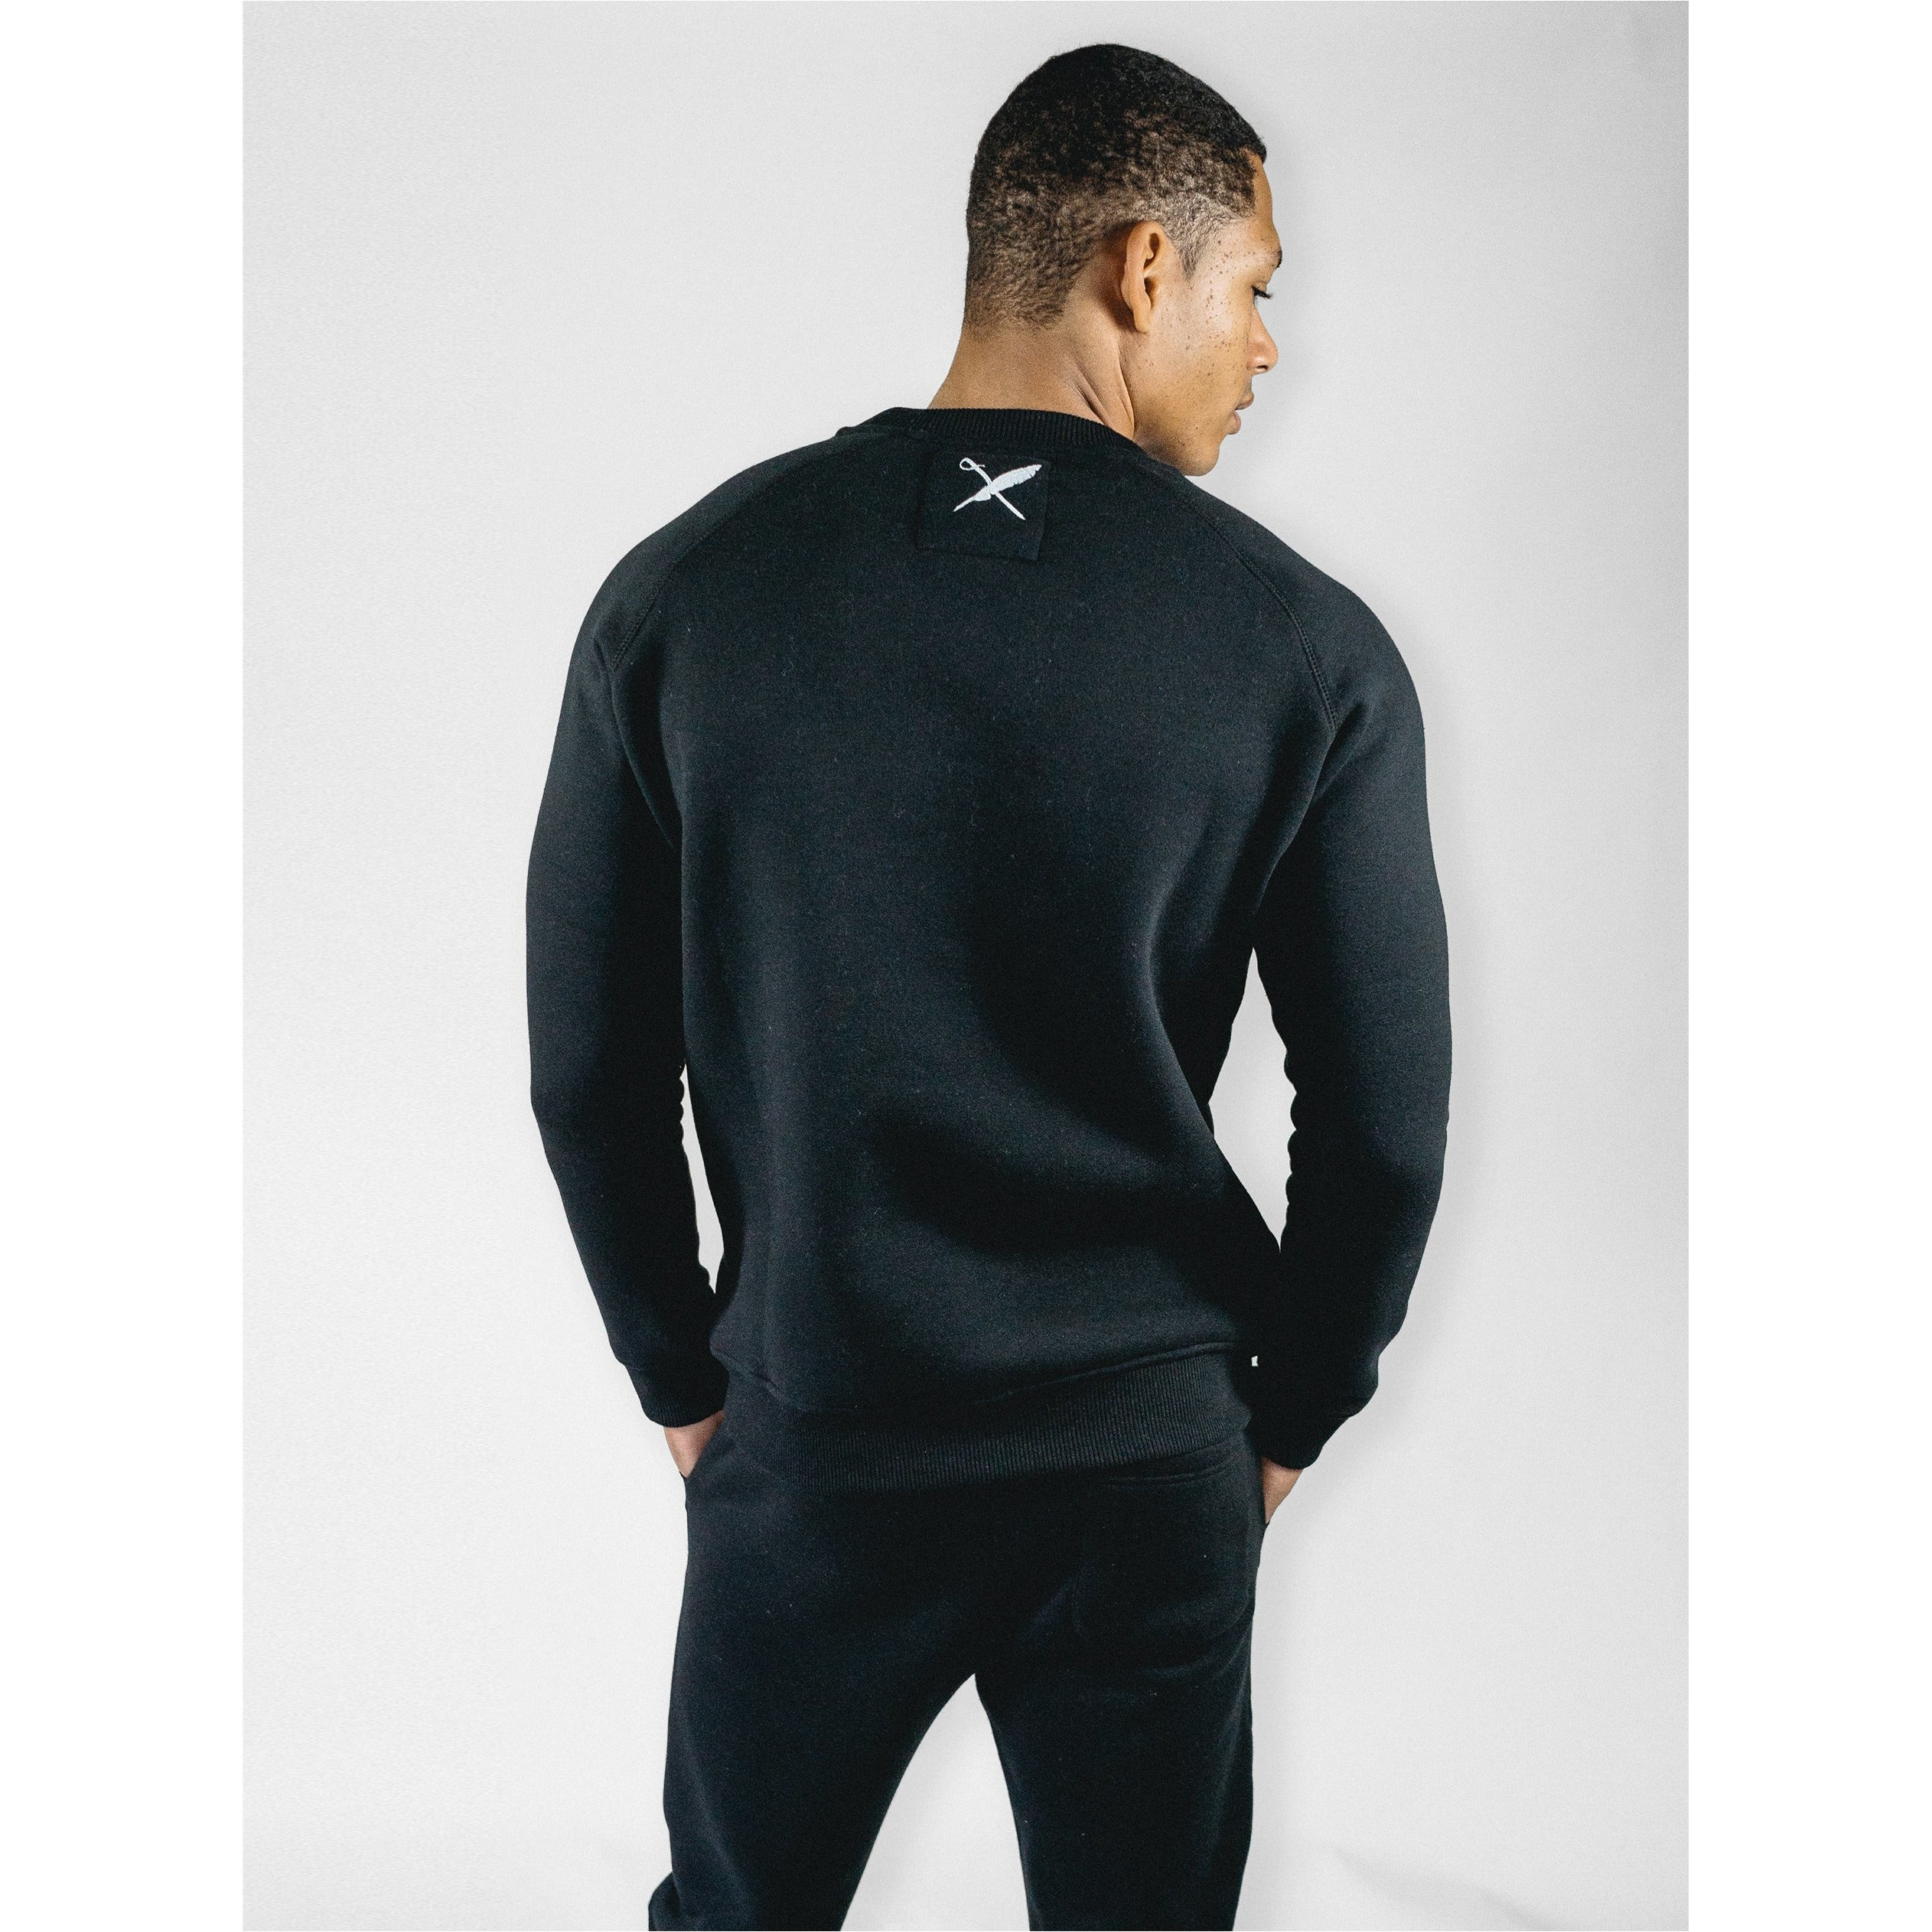 UNISEX BOBBY PULLOVER IN BLACK